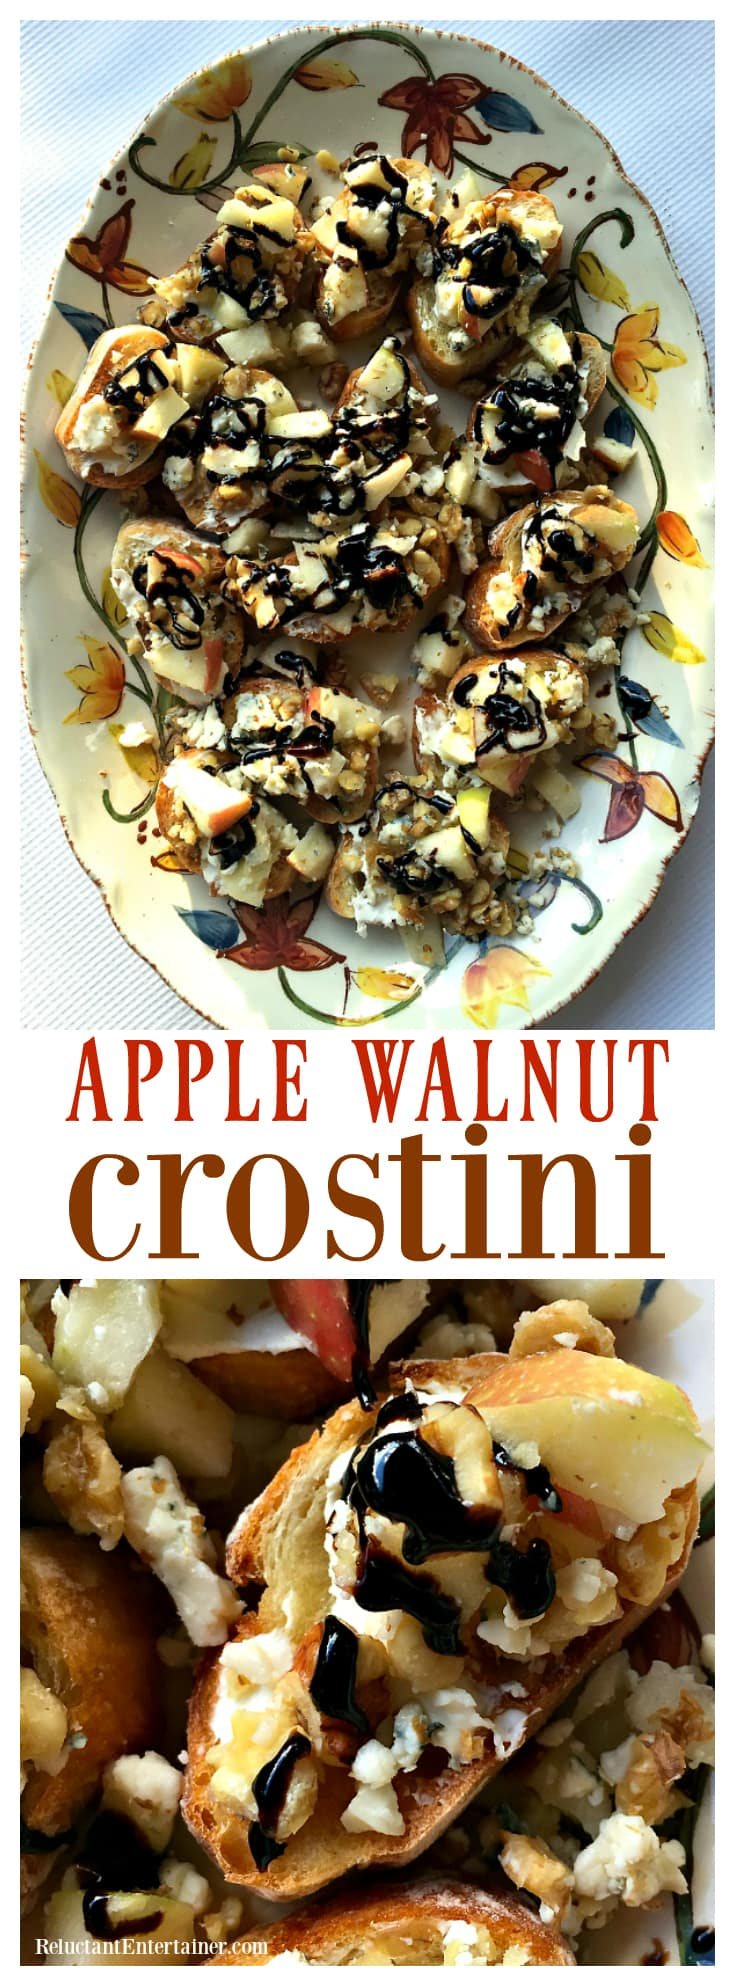 Apple Walnut Crostini appetizer, made with delicious Honey Crisp apples and gorgonzala cheese.